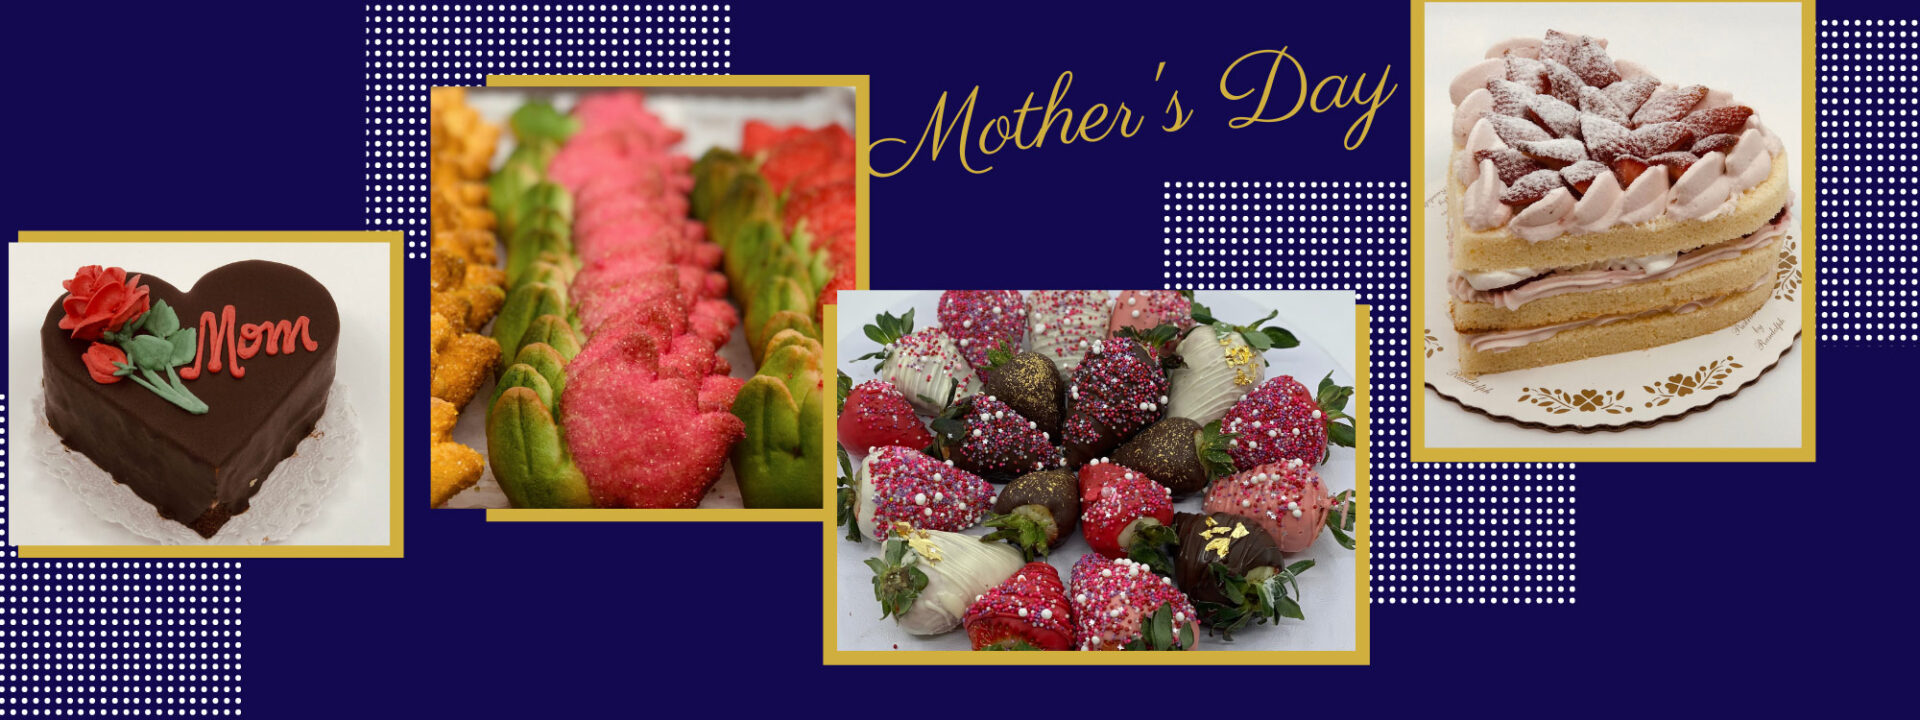 Mother's Day treat from Pastries by Randolph